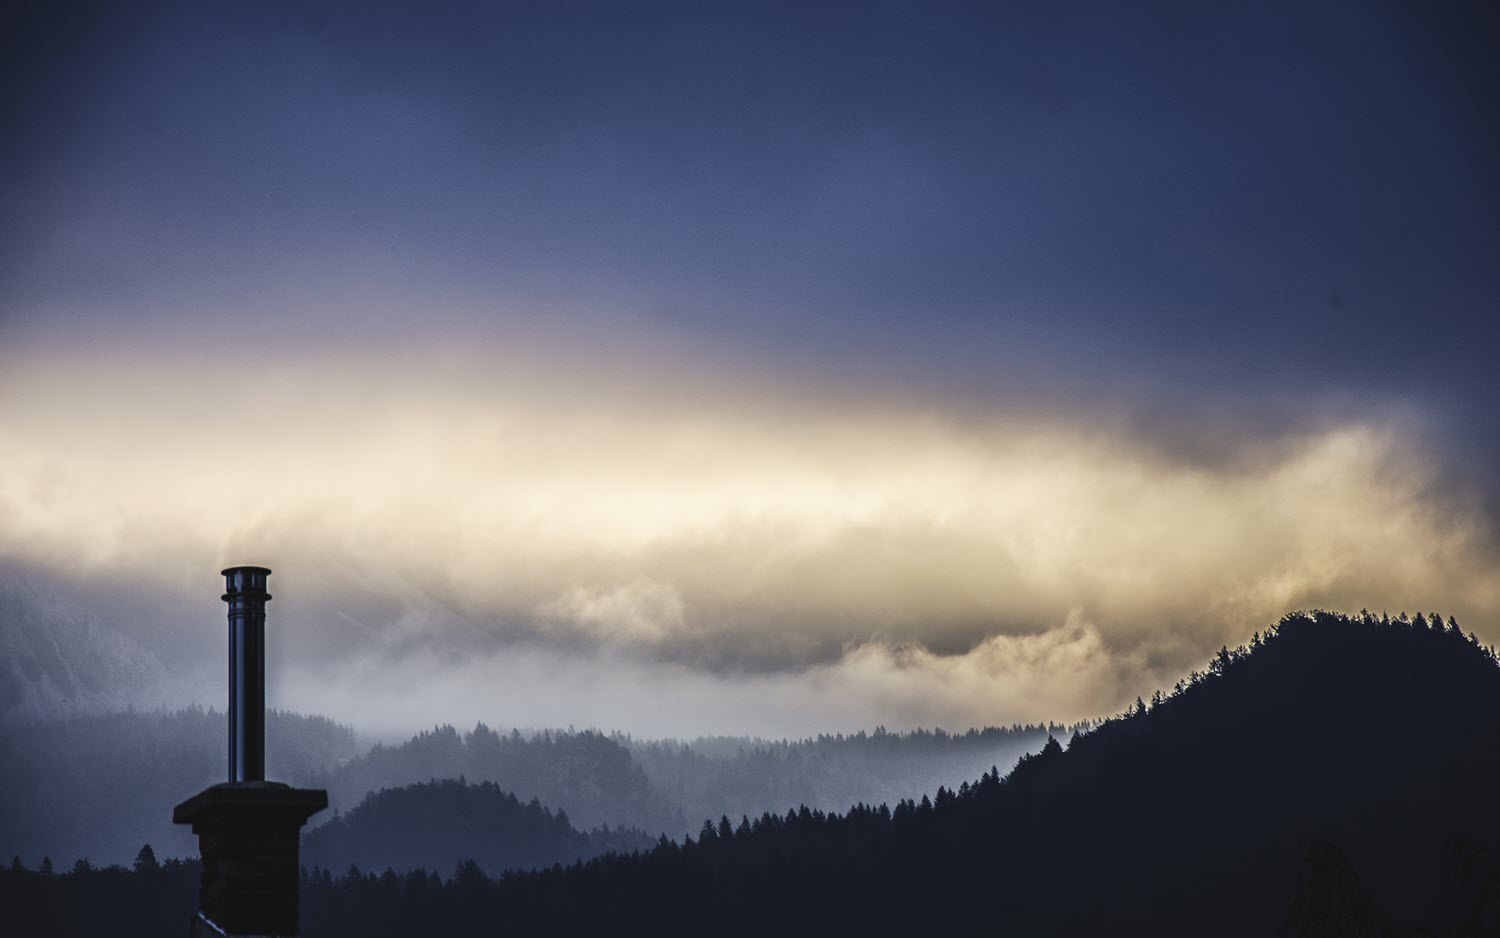 Foggy skyline with mountains